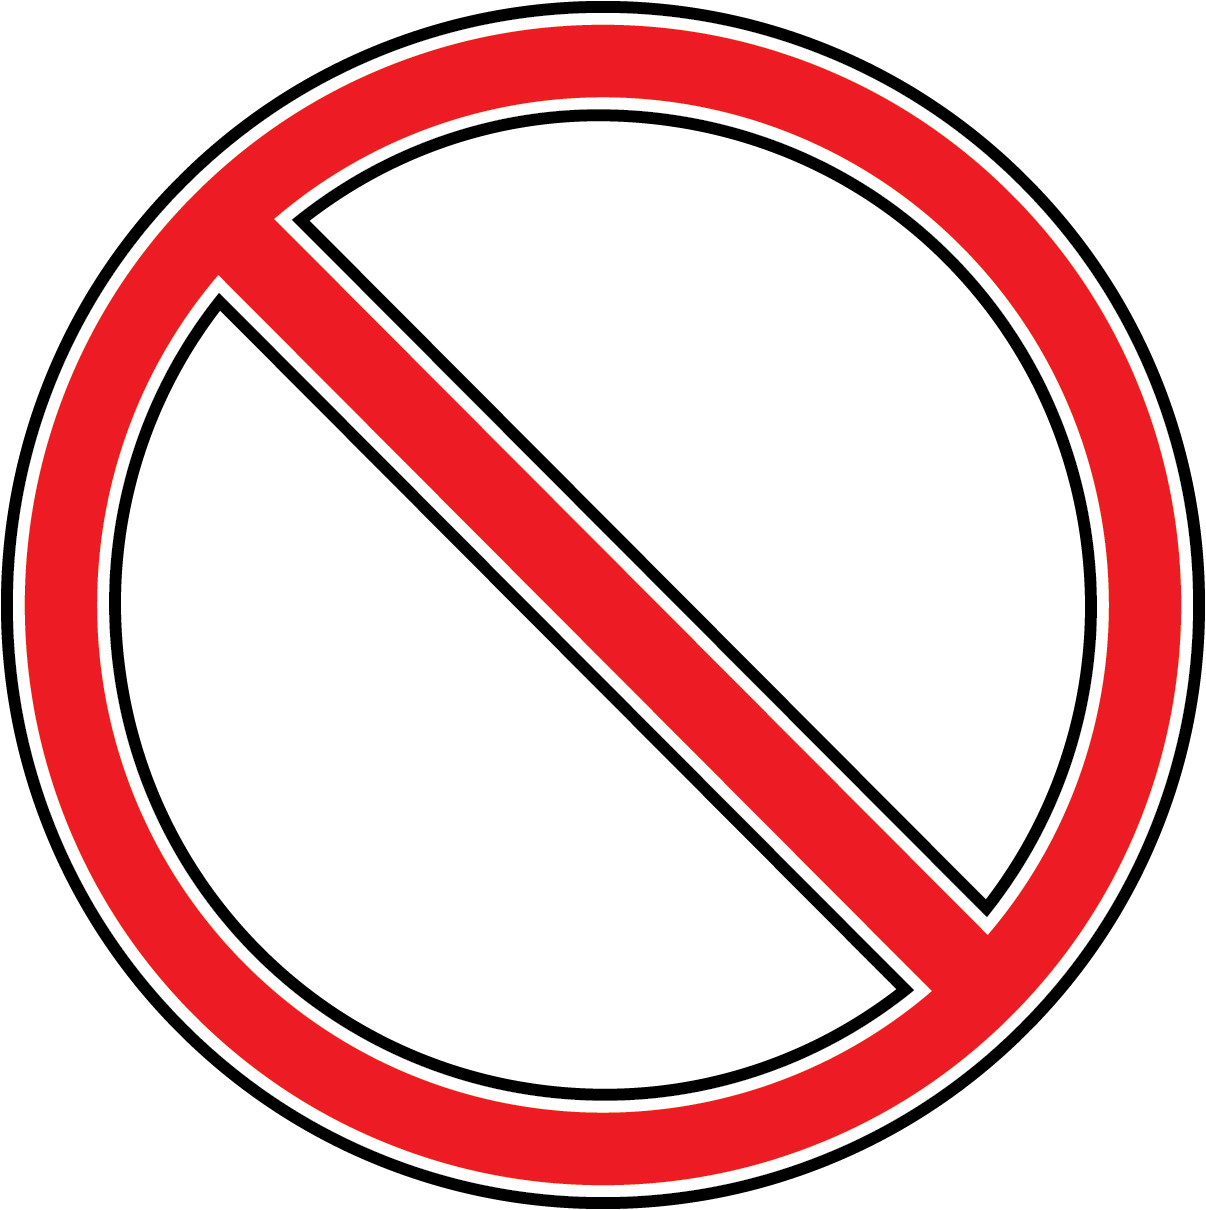 Stop Clipart-stop clipart-15